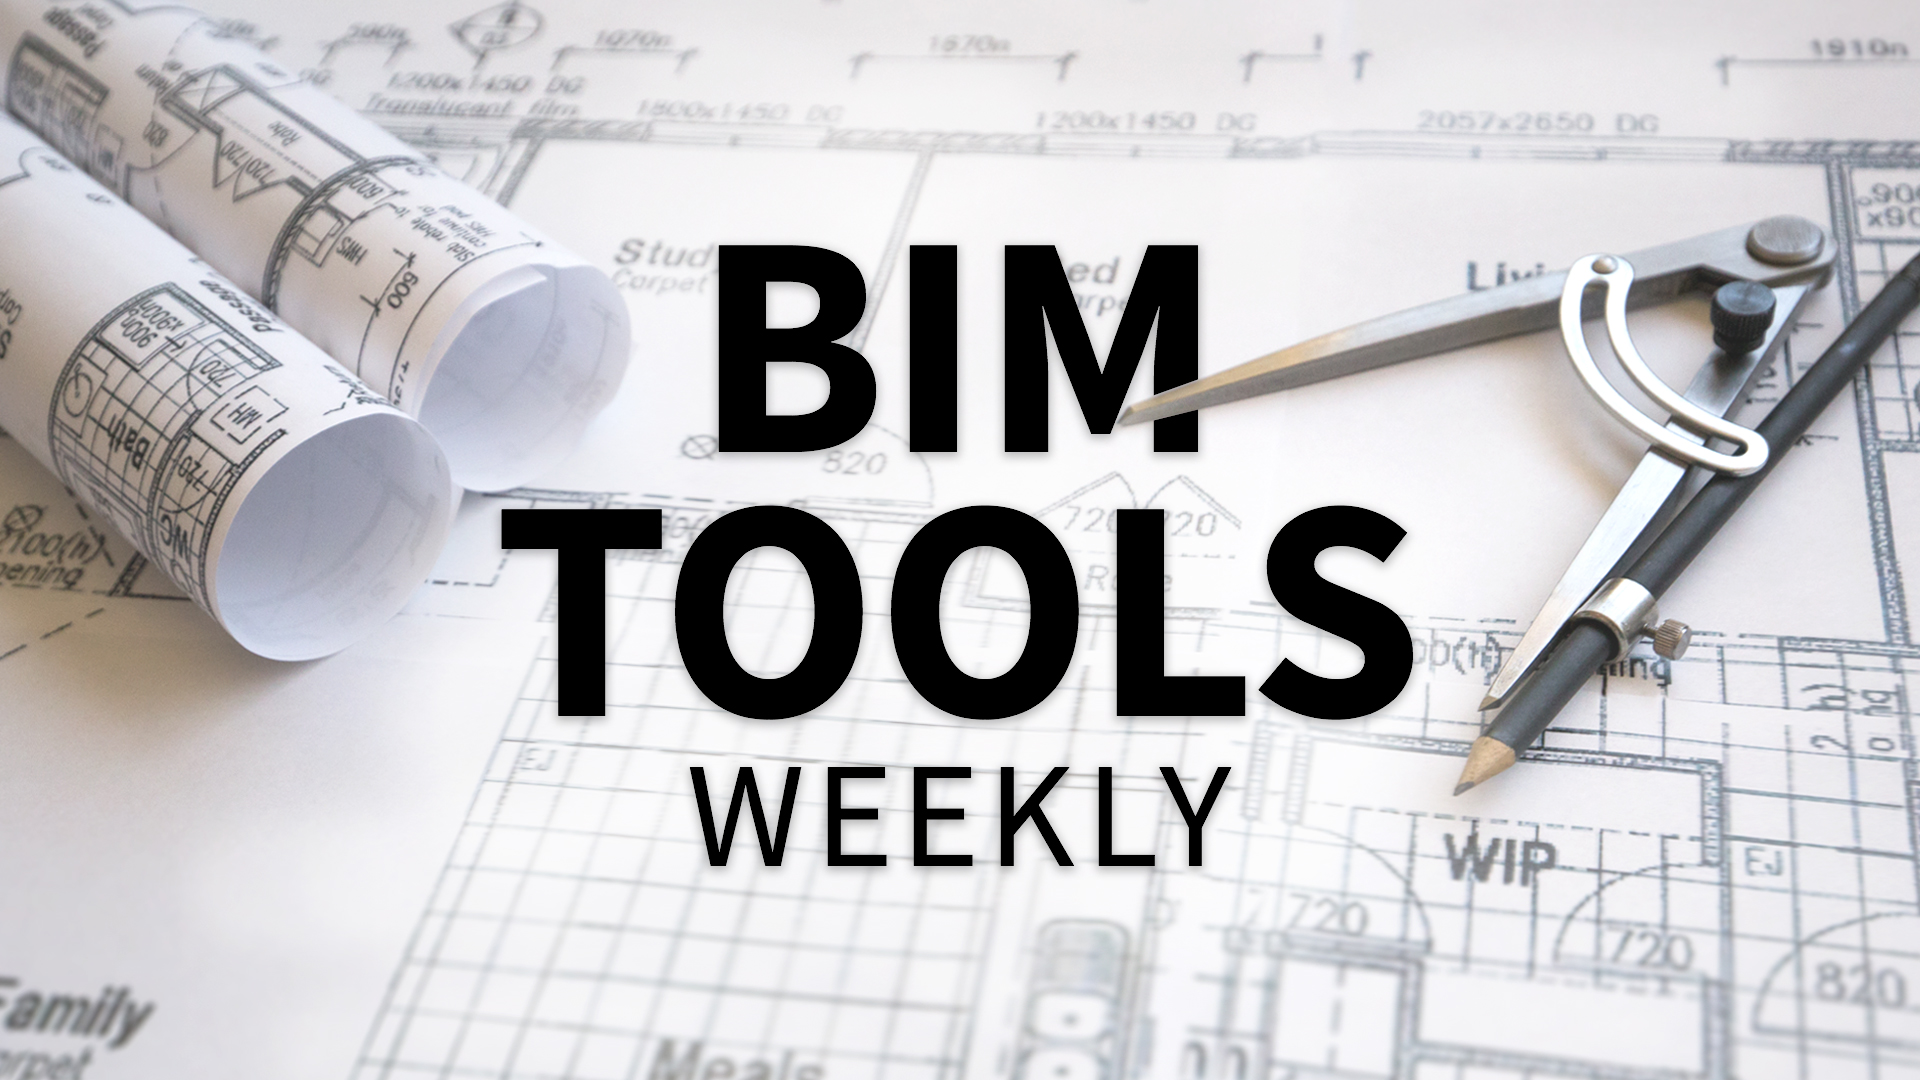 Collaboration for Revit using BIM 360 Document Management: BIM Tools Weekly